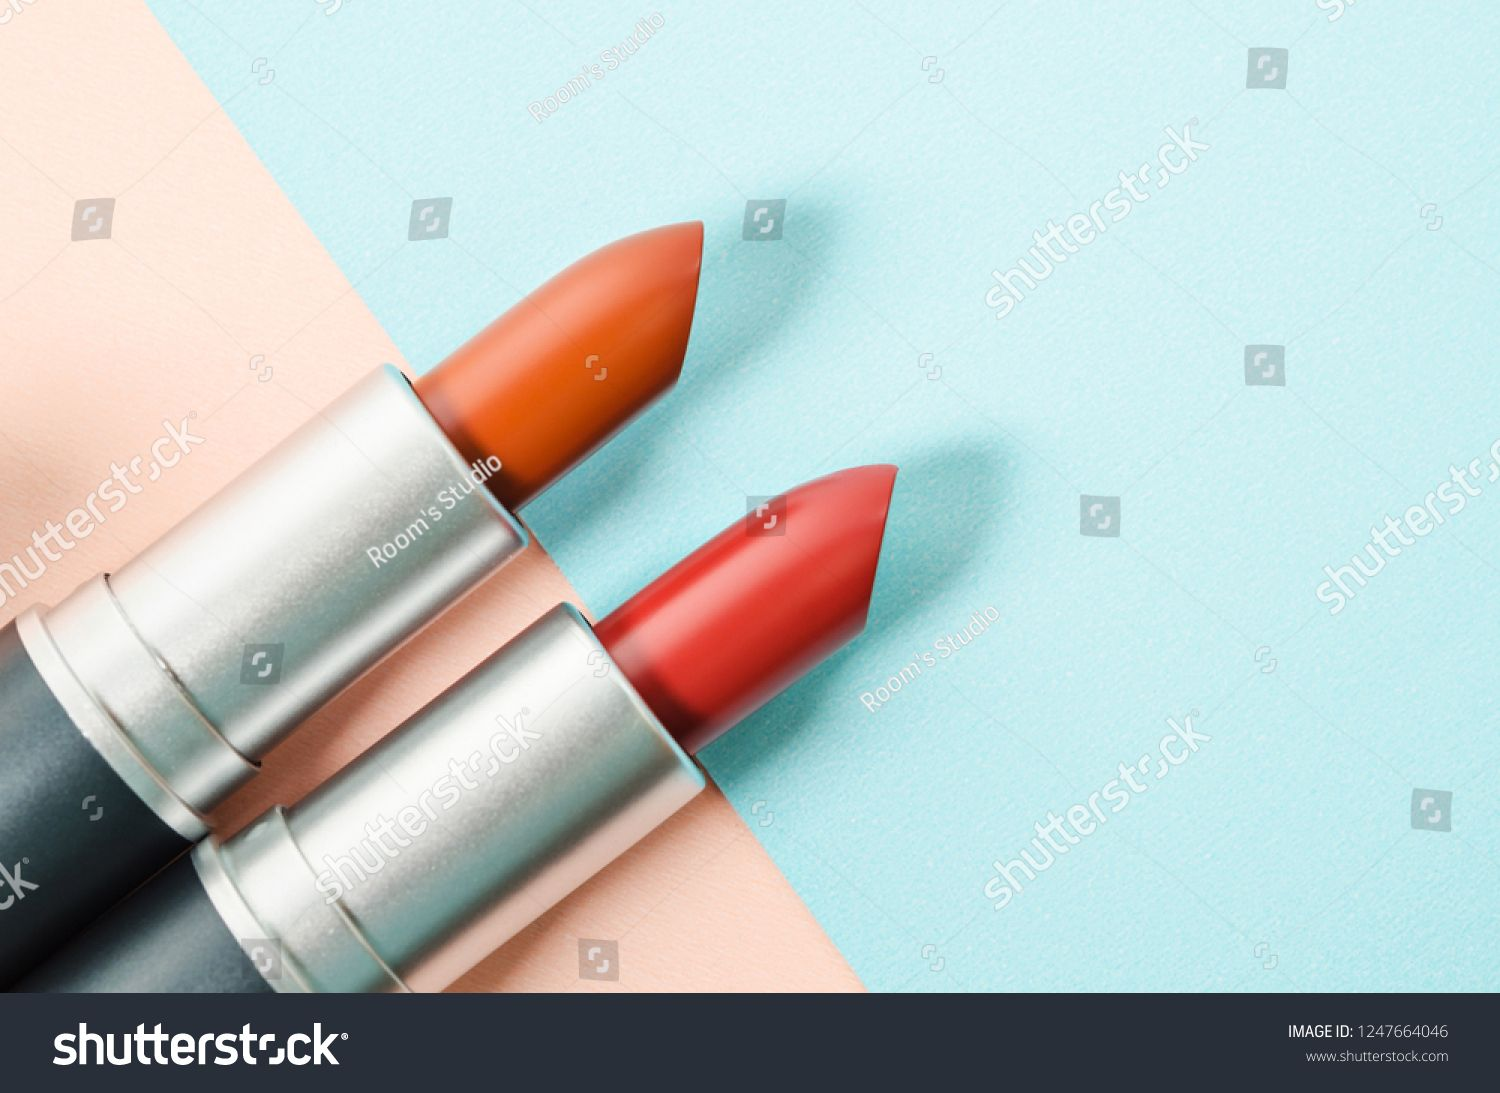 Lipstick. Fashion Colorful Lipsticks over beautiful background with free space for text or your mes